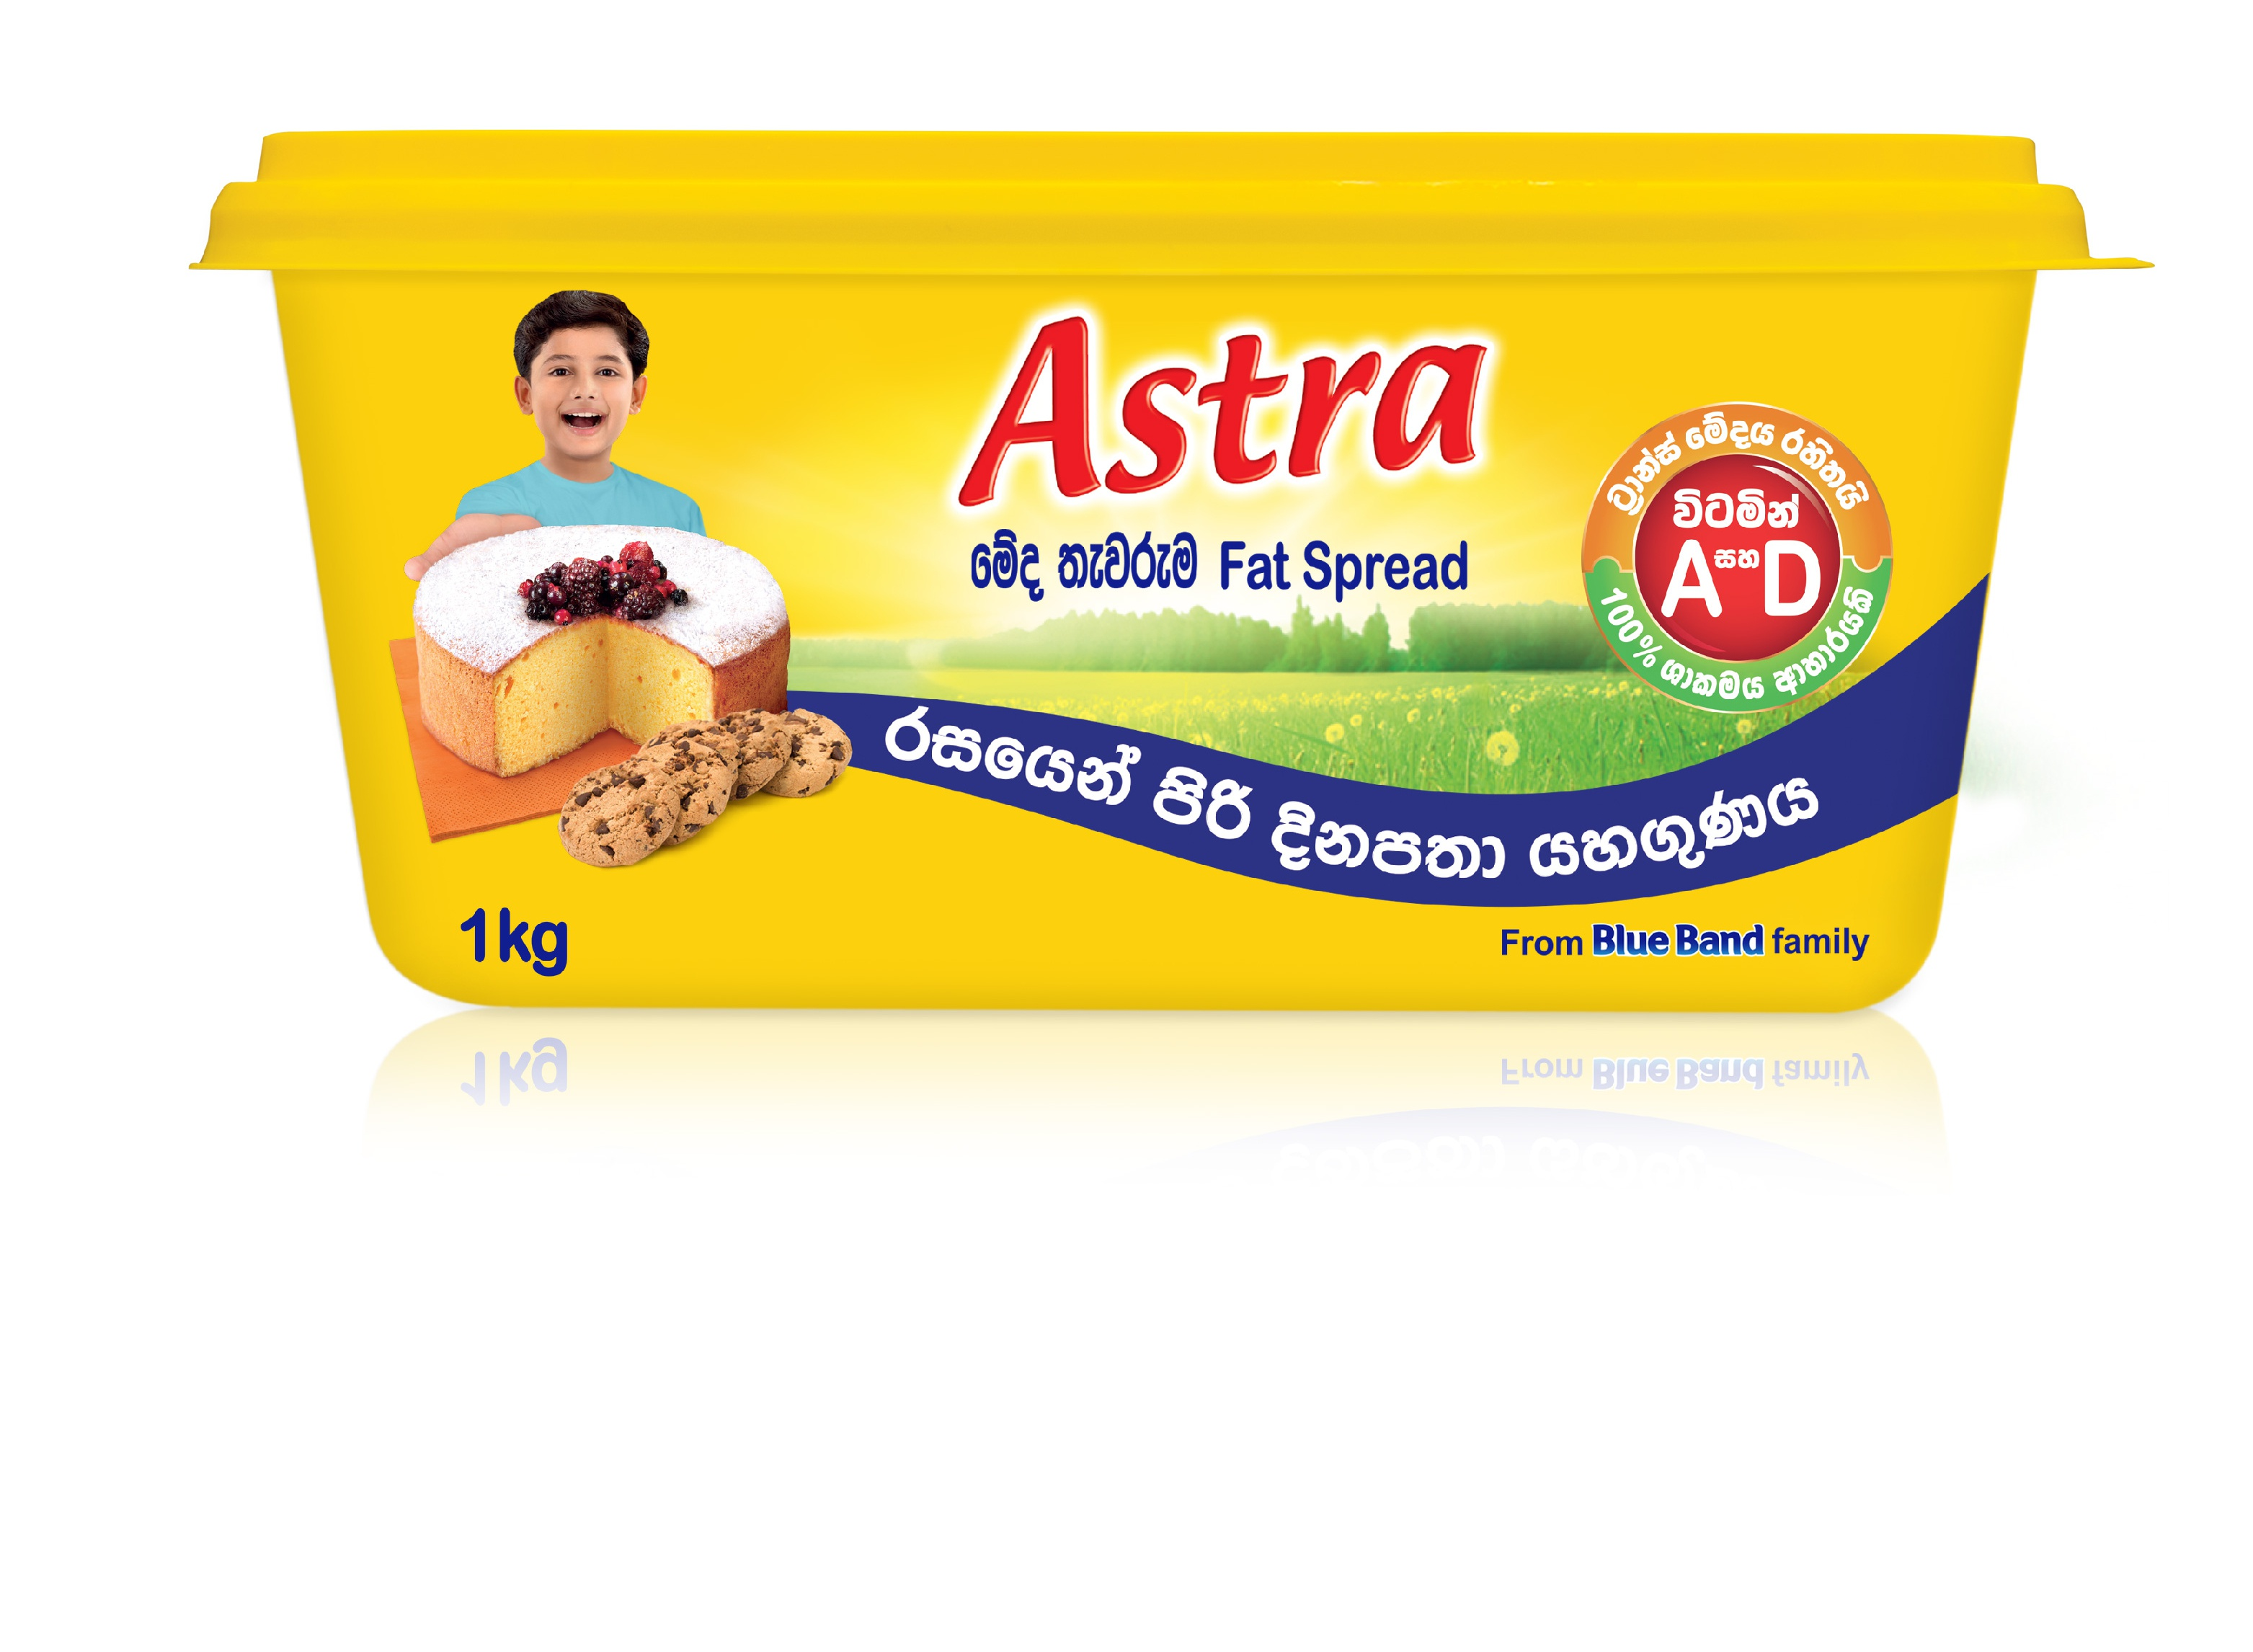 Astra Fat Spread 1Kg - ASTRA - Spreads - in Sri Lanka